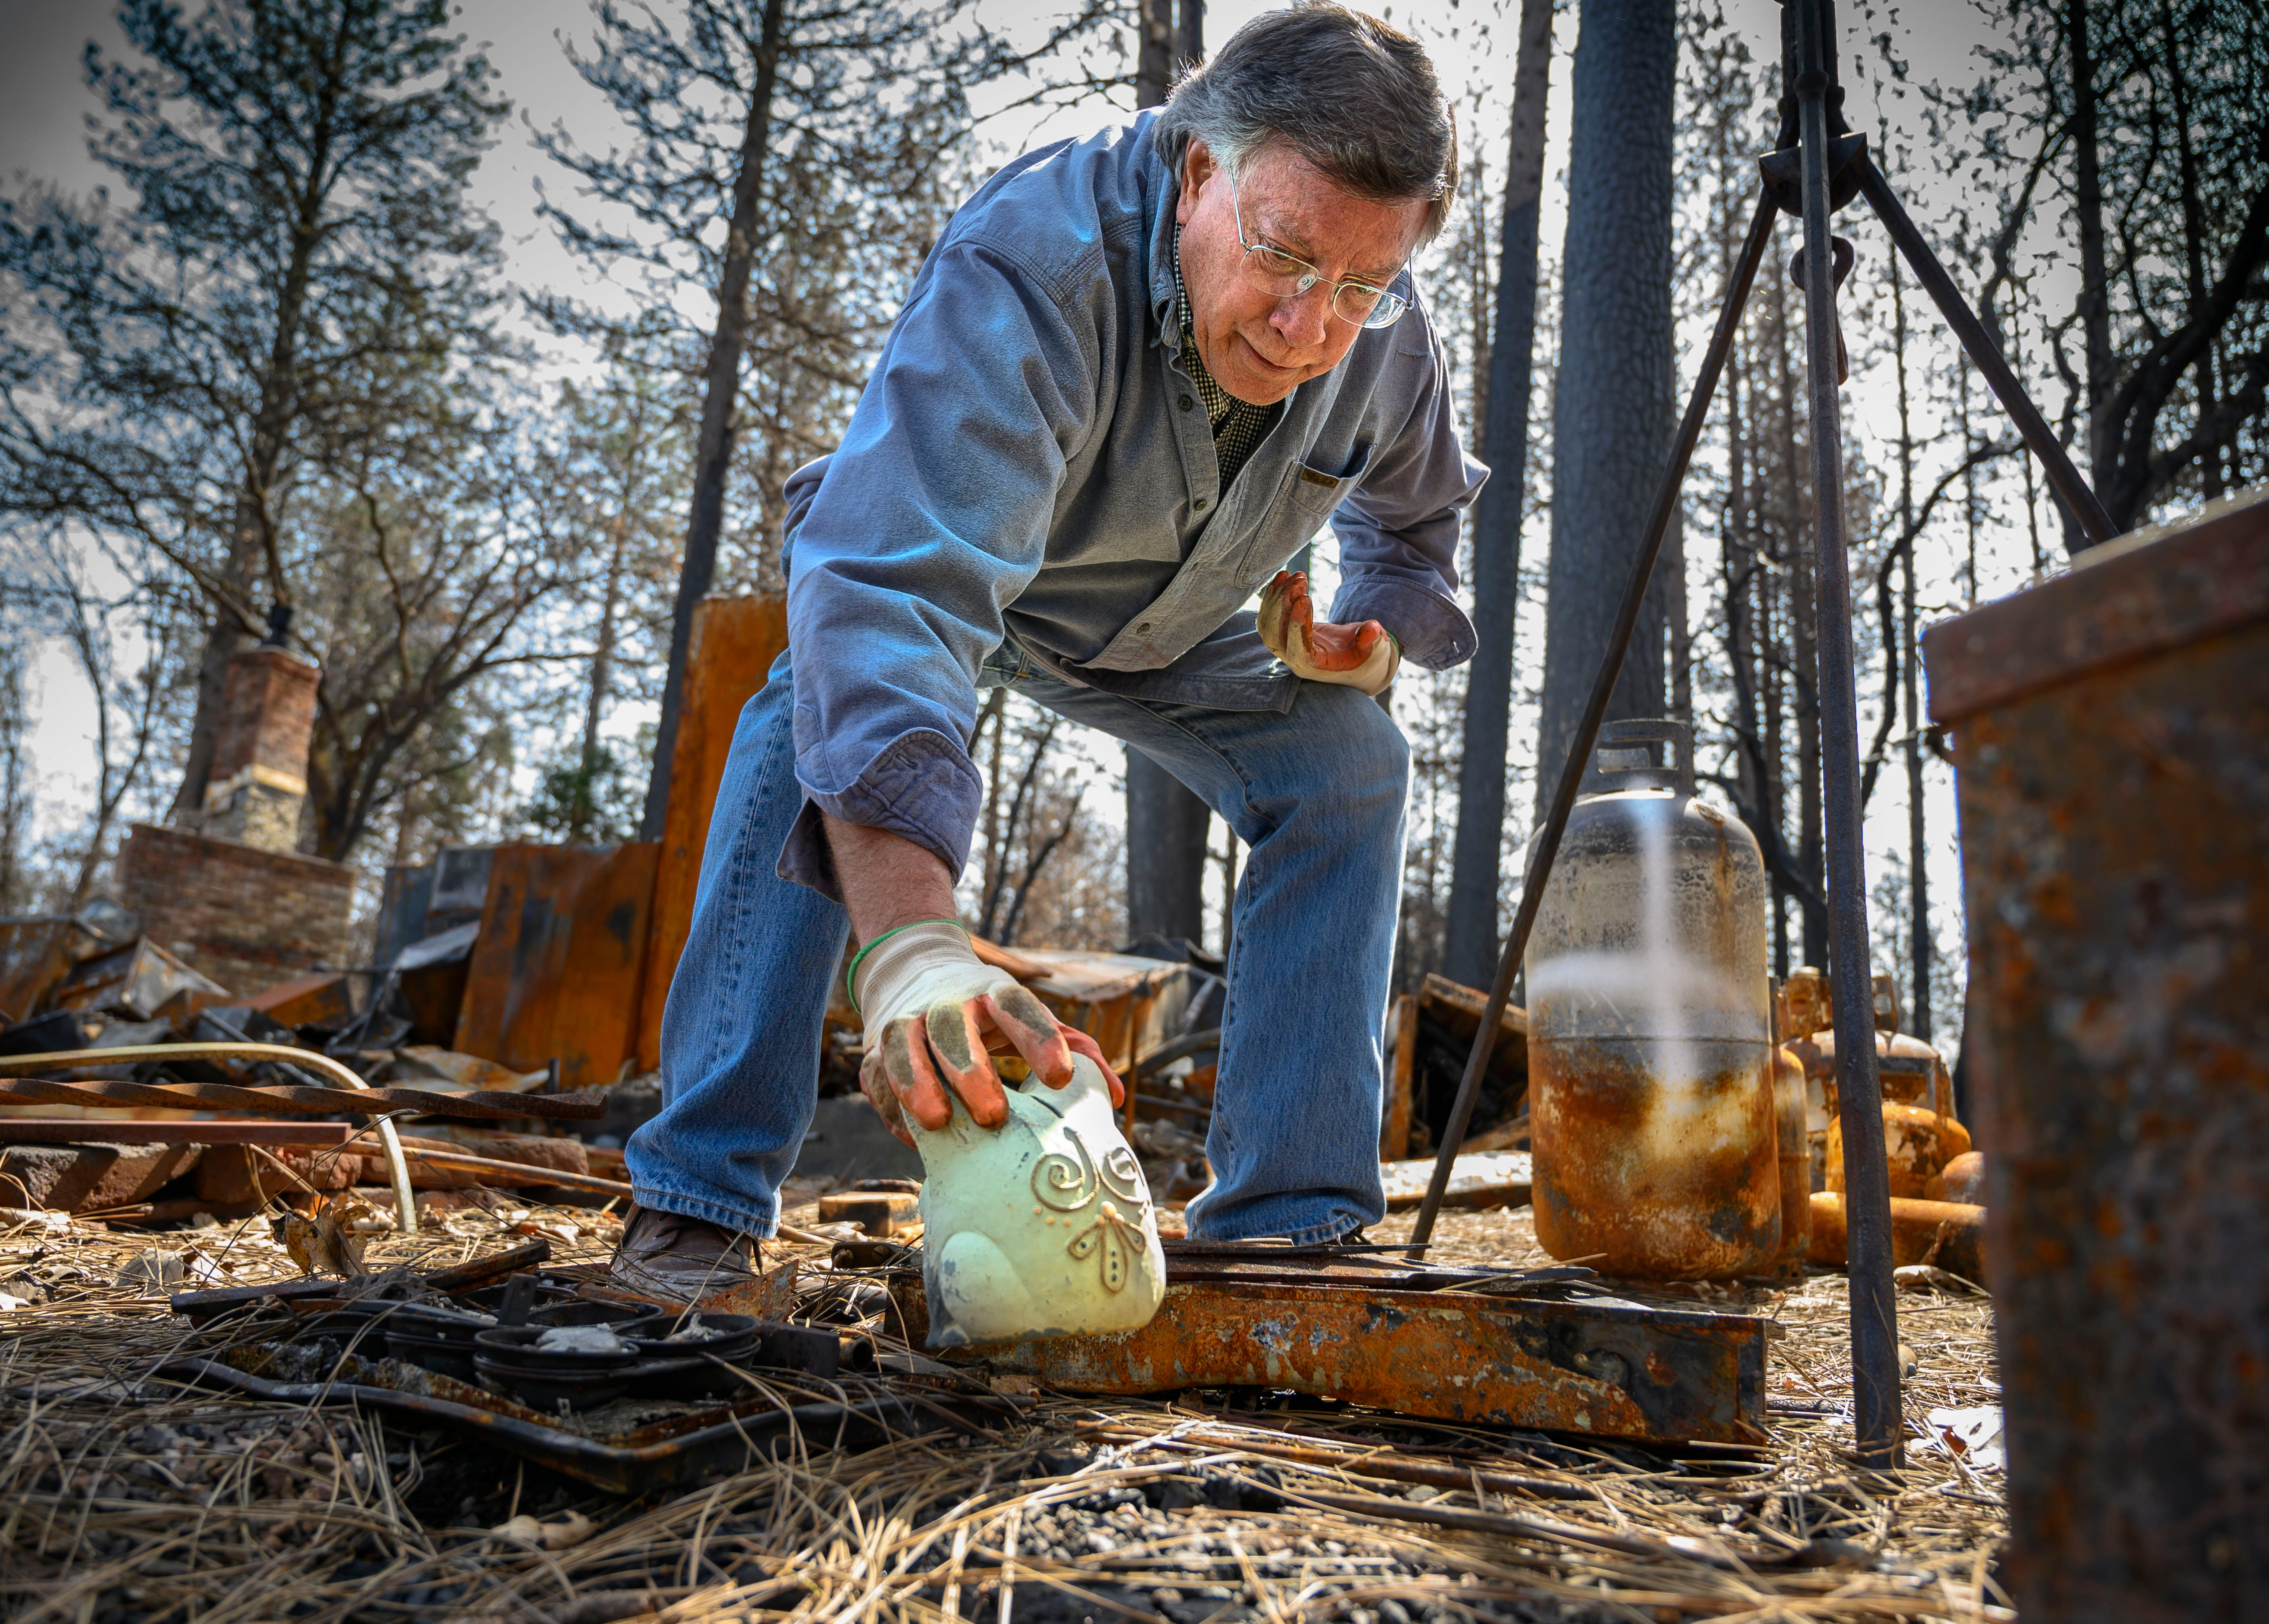 Gene Mapa collects metal and ceramic objects that didn't burn in the Camp Fire at his house in Paradise. Mapa now lives in Colfax, which as a similar level of fire risk.